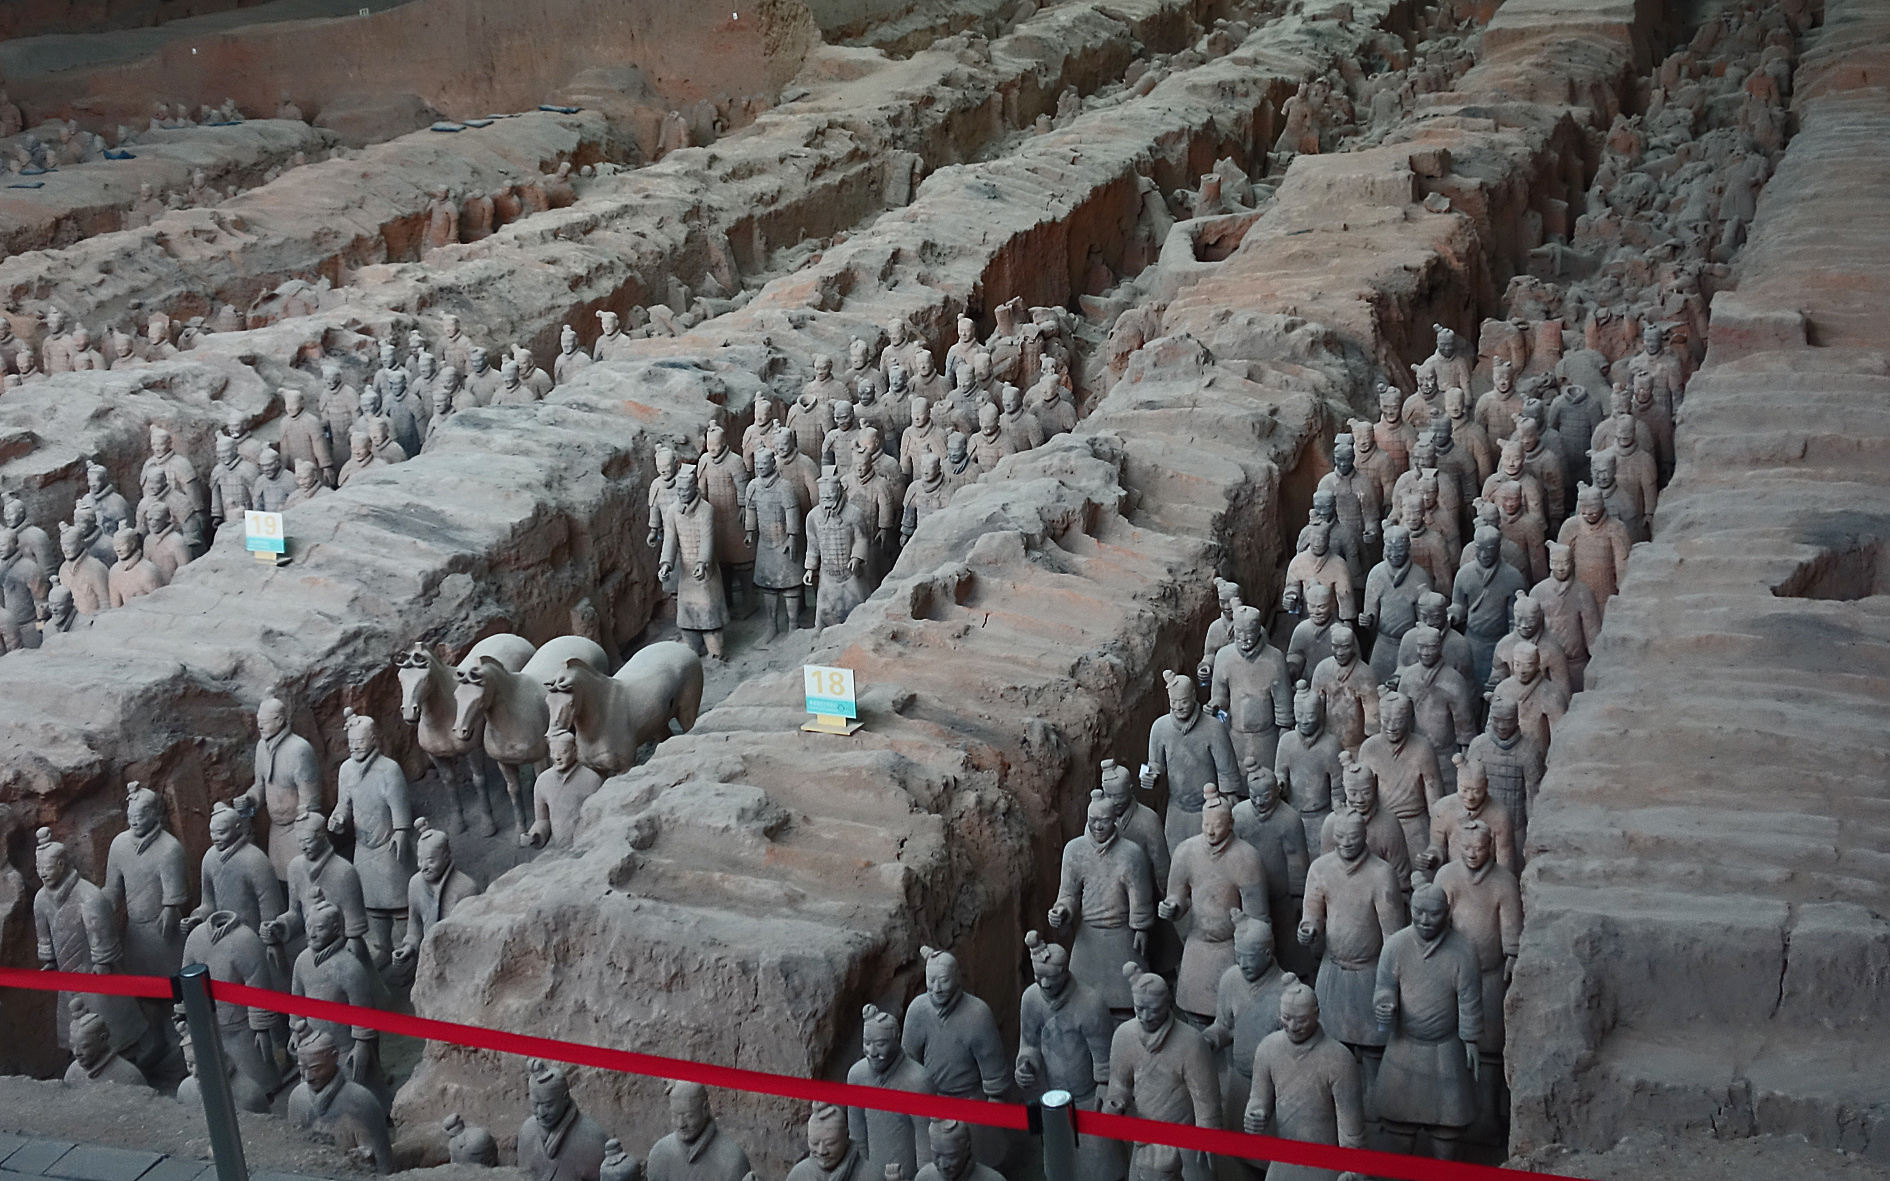 Mass rows of terracotta army